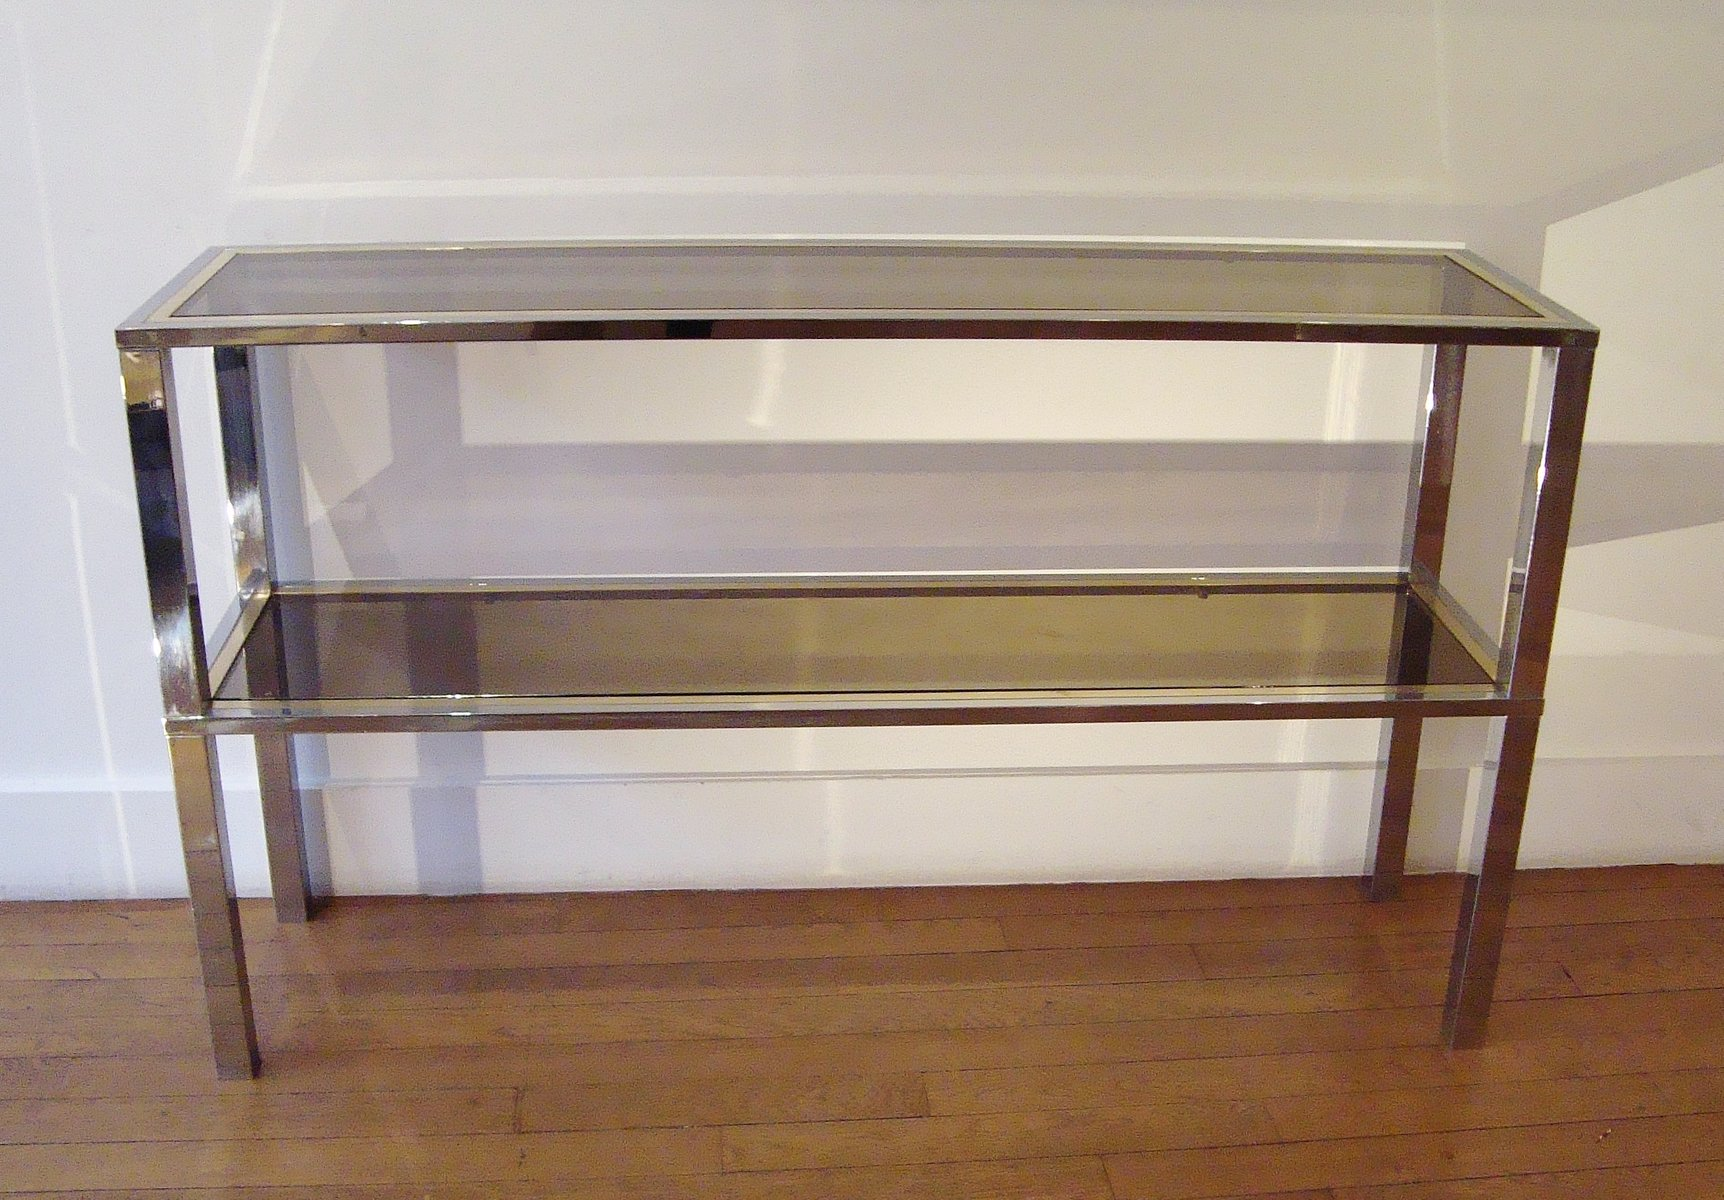 MidCentury Italian Rectangular Brass and Glass Console Table by